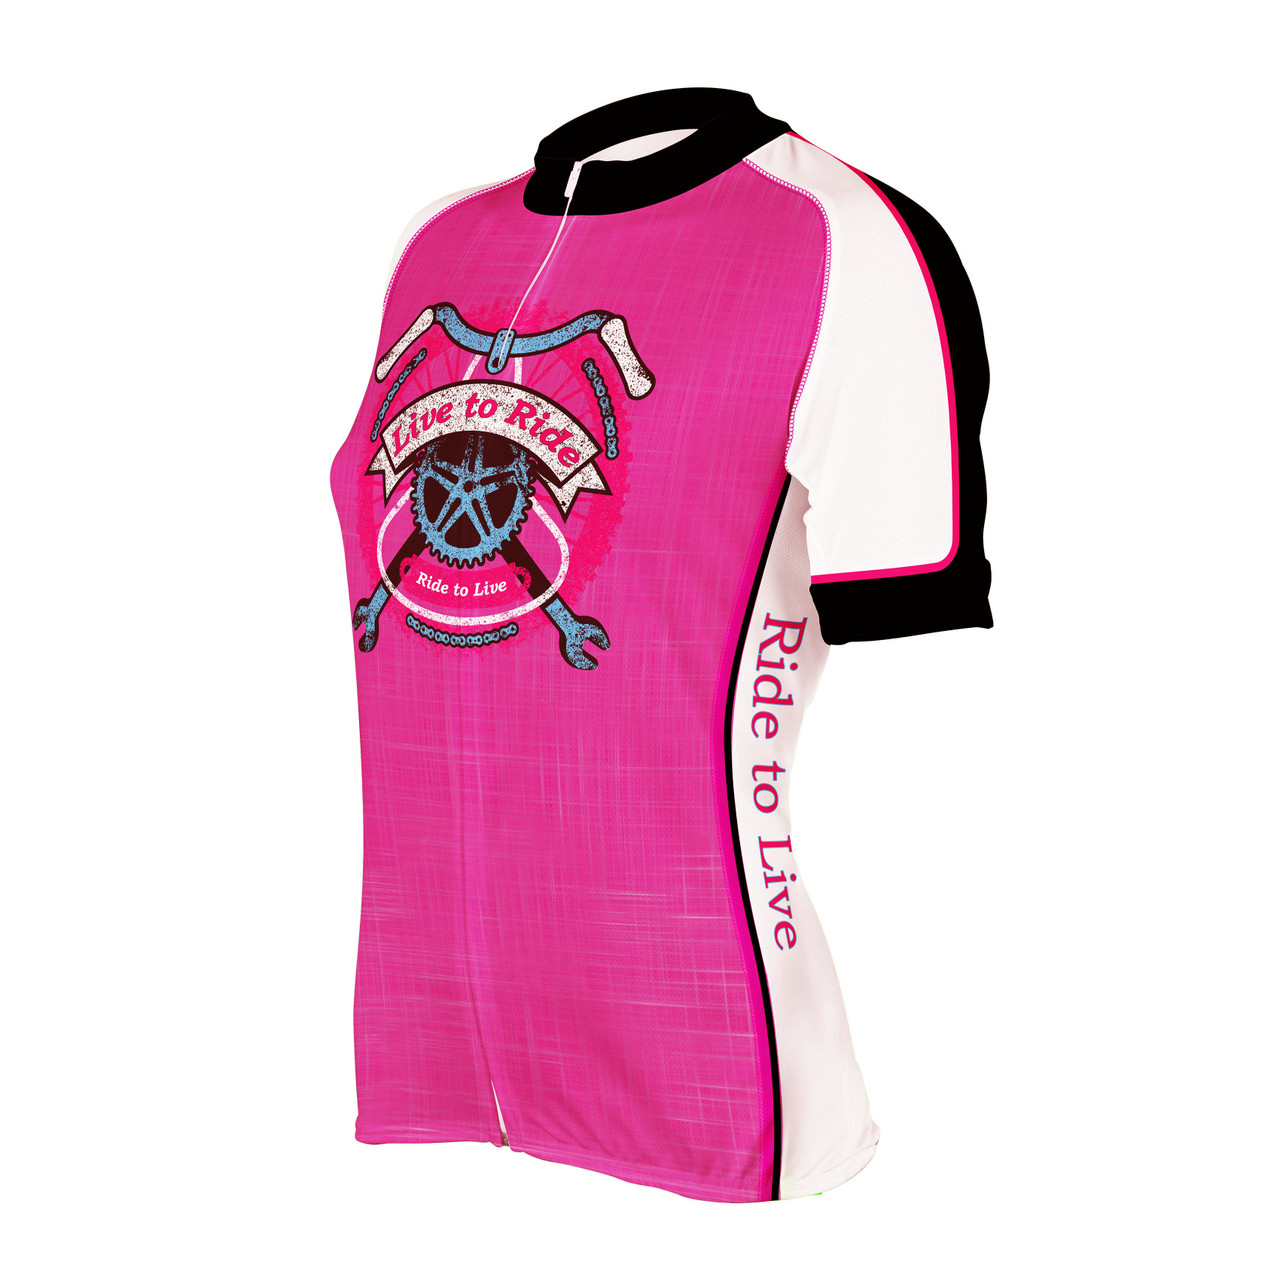 Peak 1 Sports Bikes /& Beers Riding Club Mens Cycling Jersey